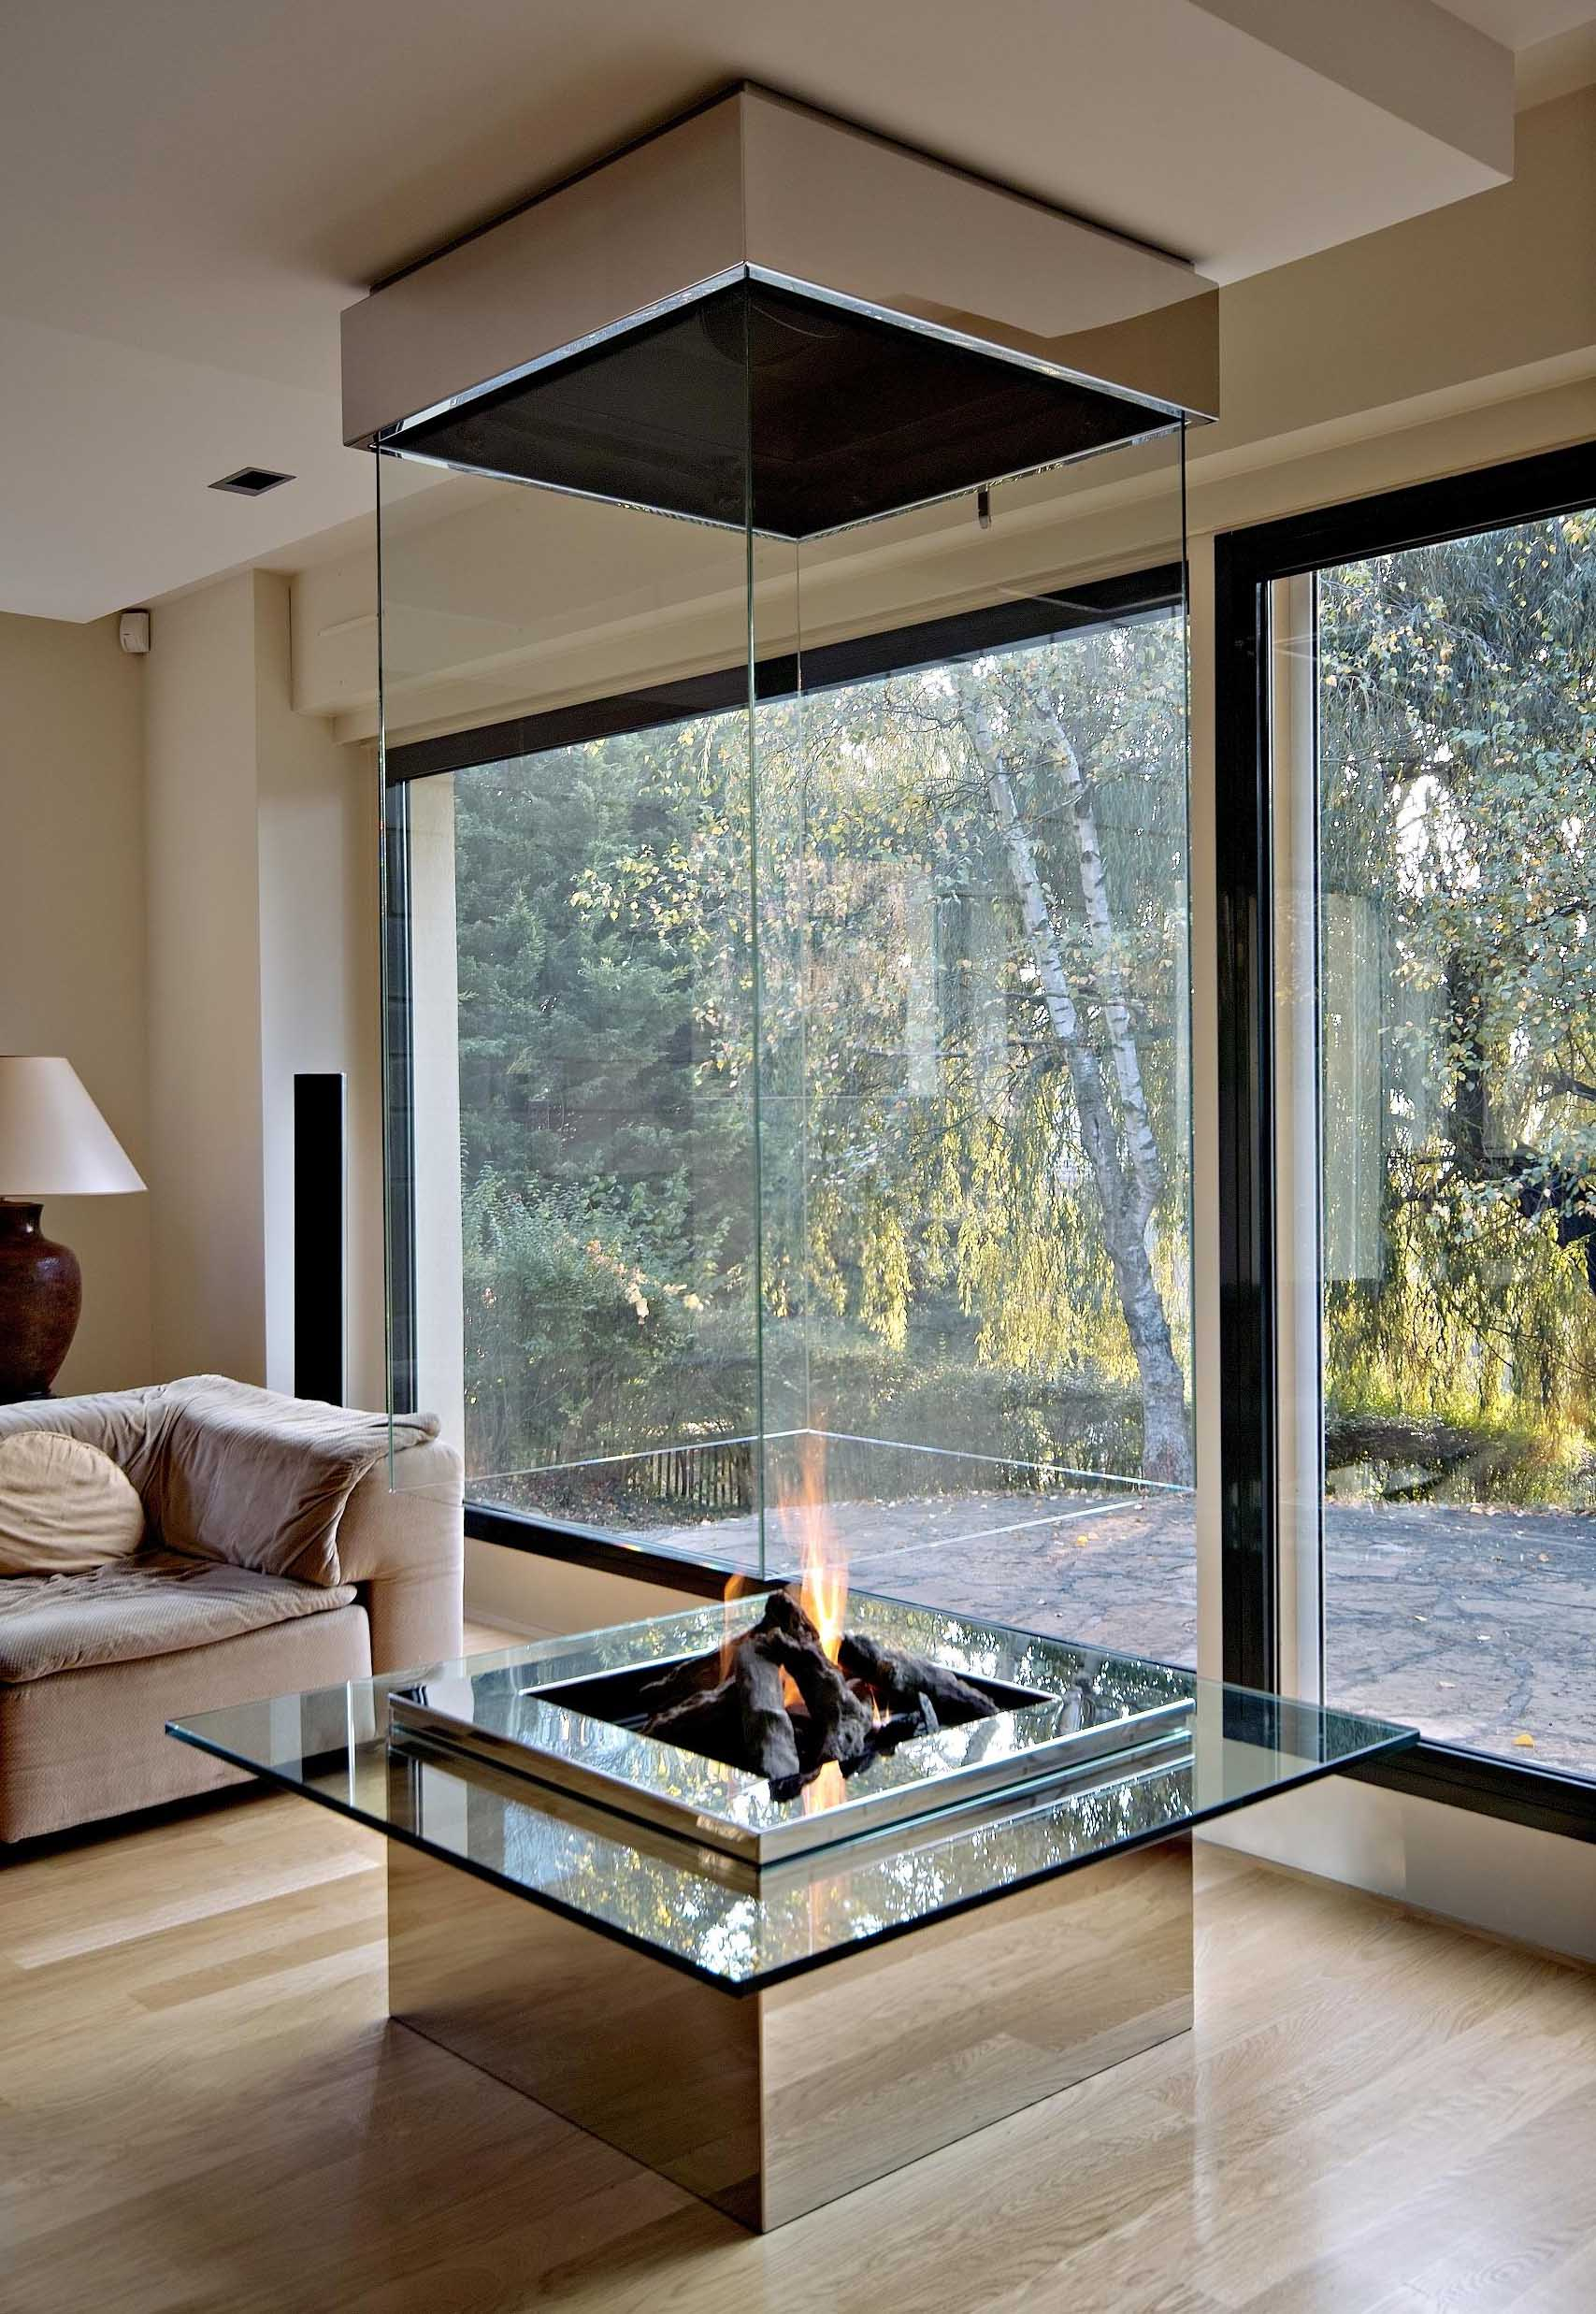 mirrored glass fireplace idea - Modern Fireplace Design Ideas